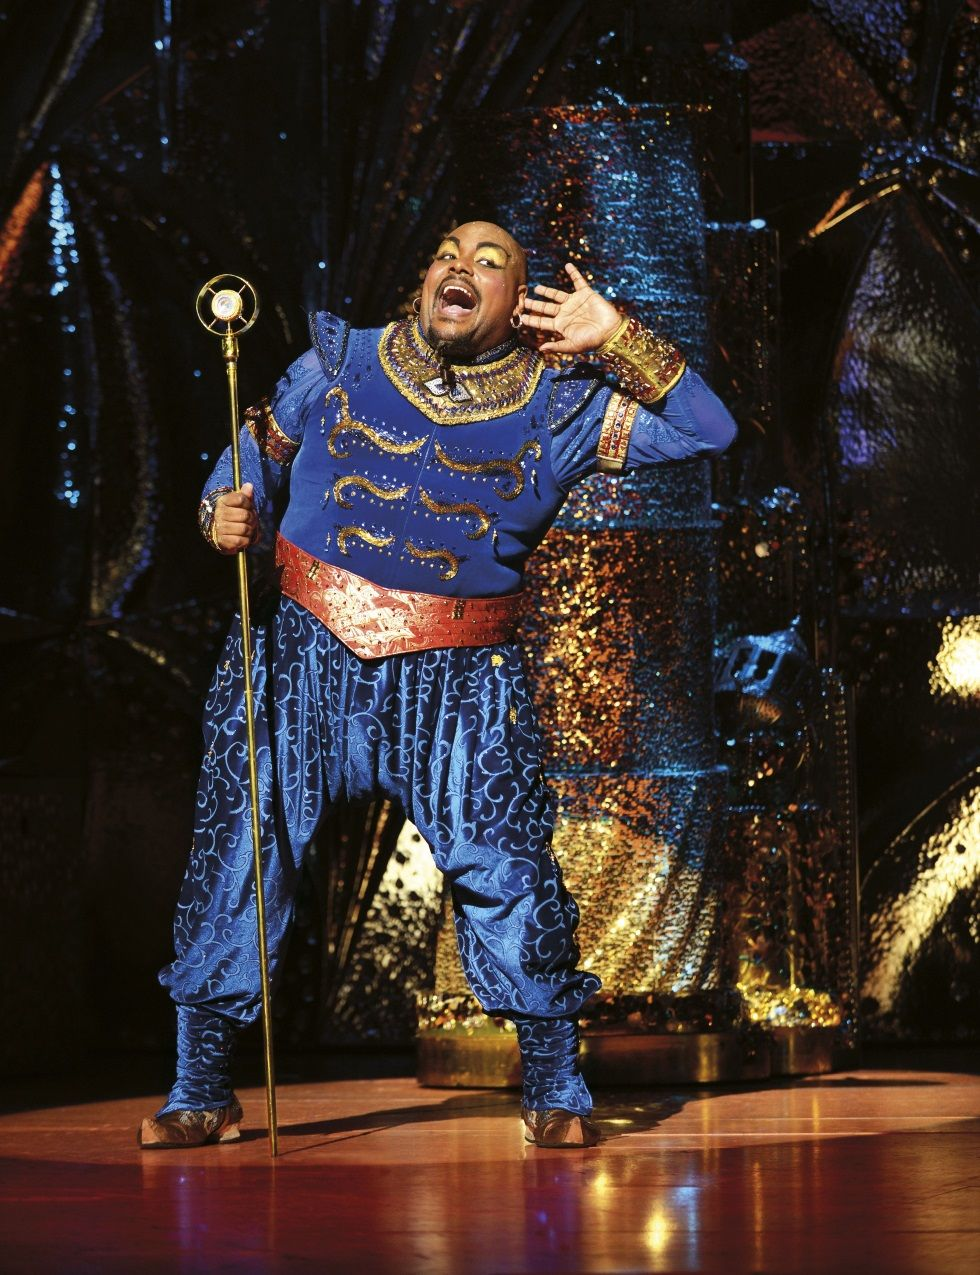 Aladdin The Musical At The Prince Edward Theatre London West End Tickets Available At Boxoffice Co Uk Aladdin Musical Aladdin Costume Aladdin Broadway